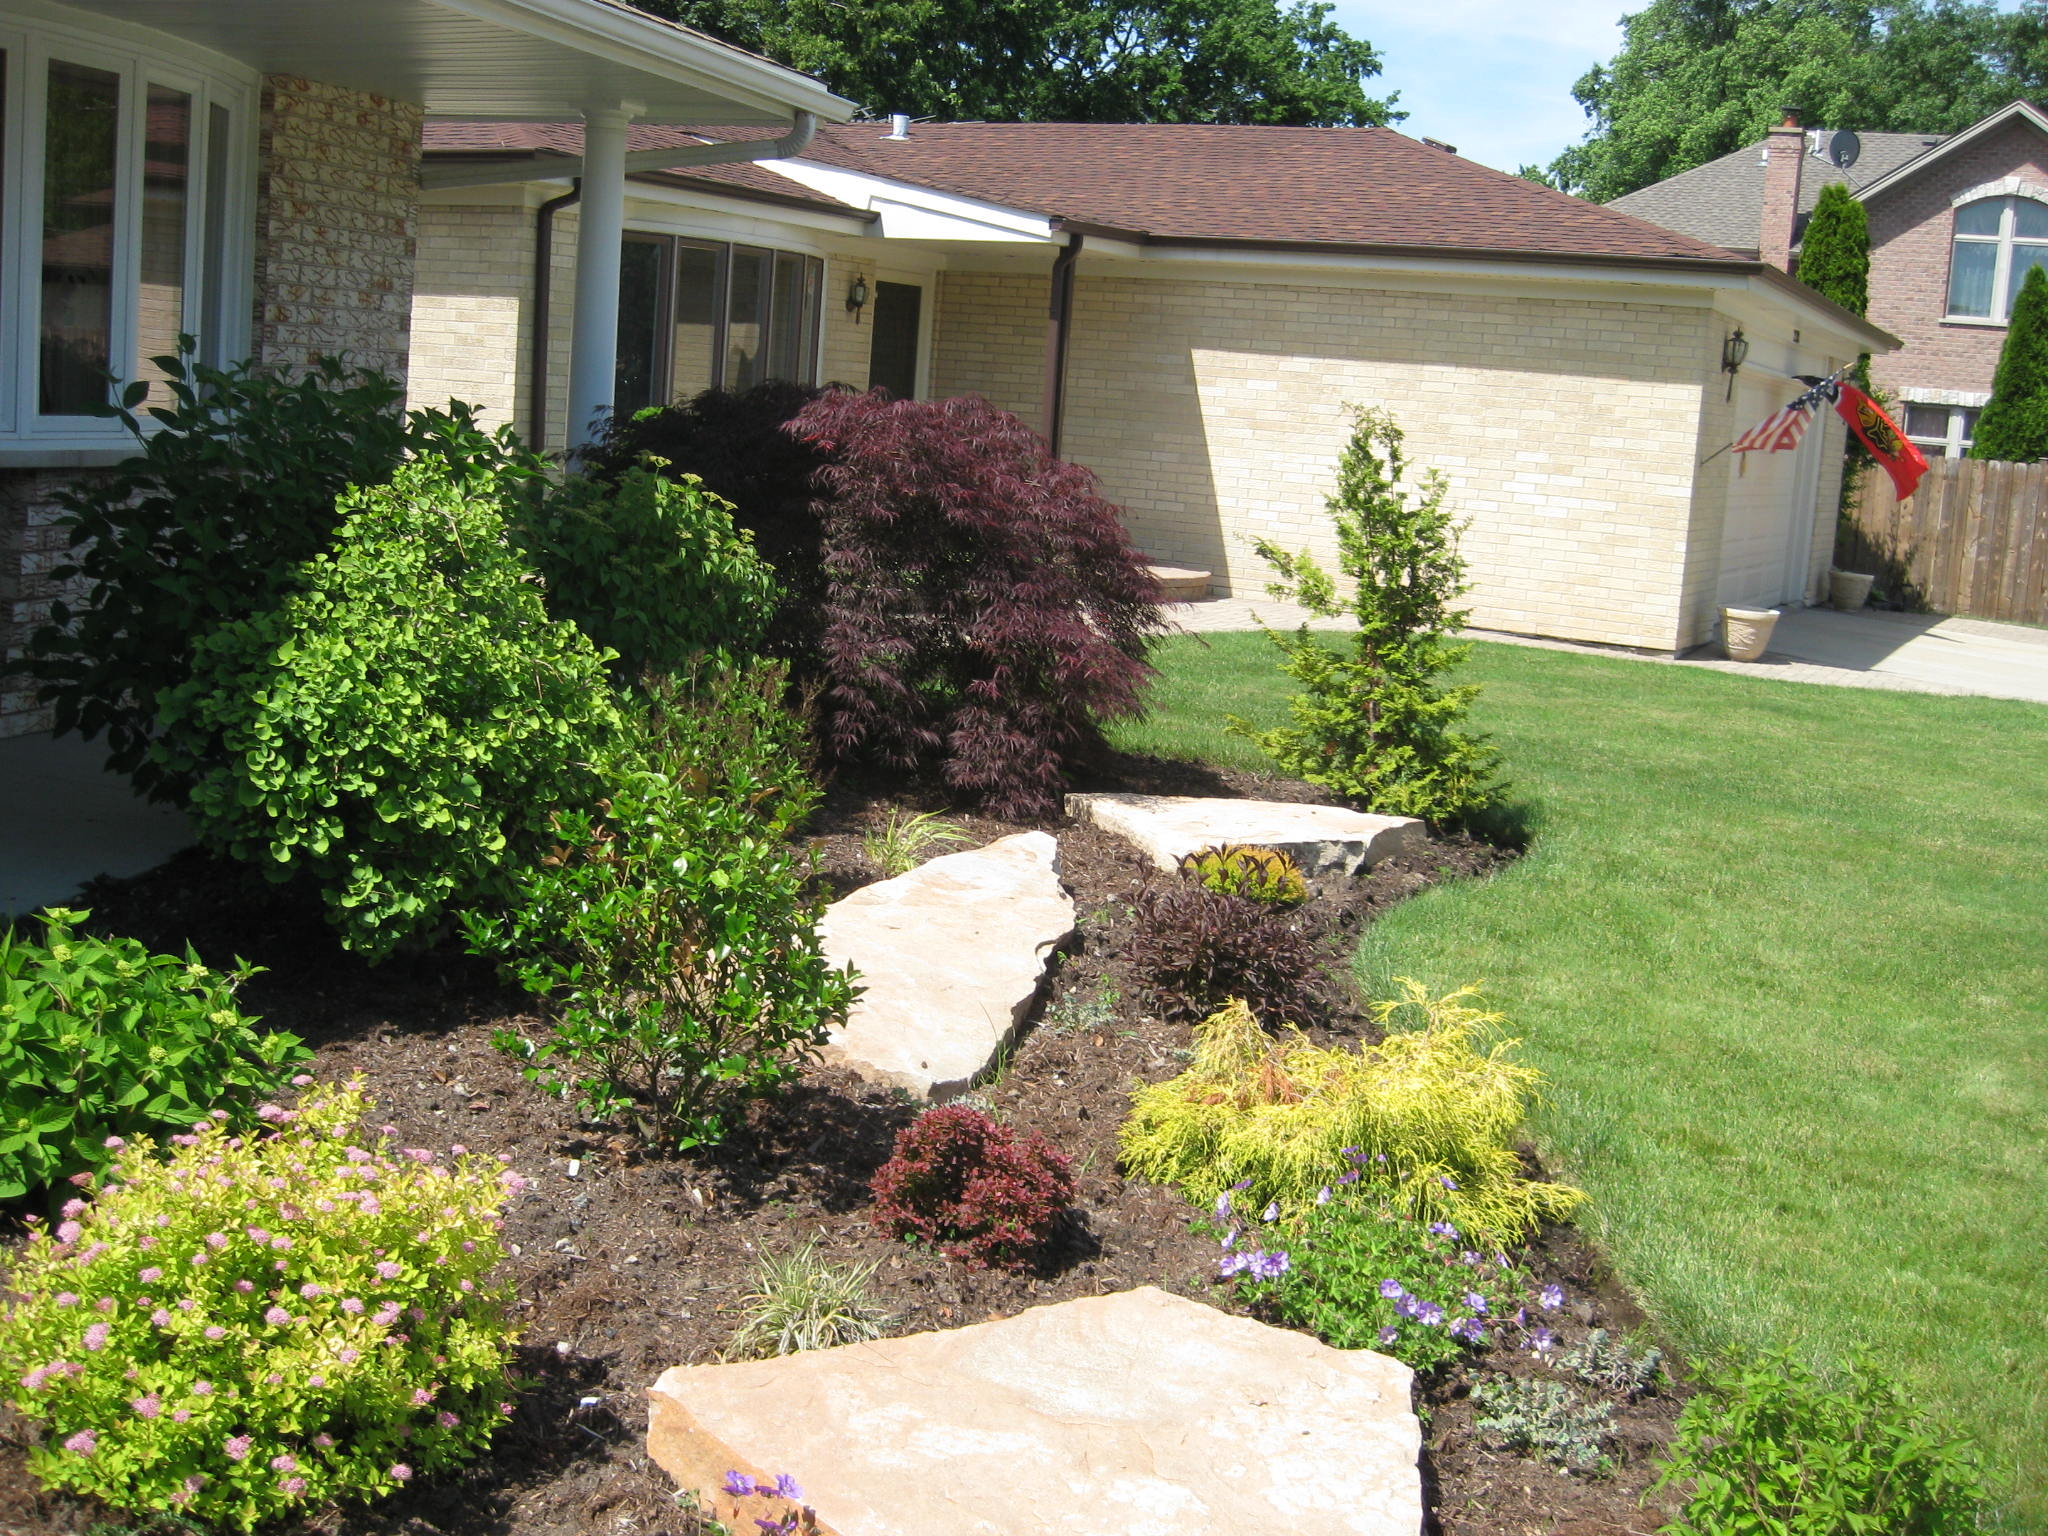 Southwestern Landscaping in Des Plaines